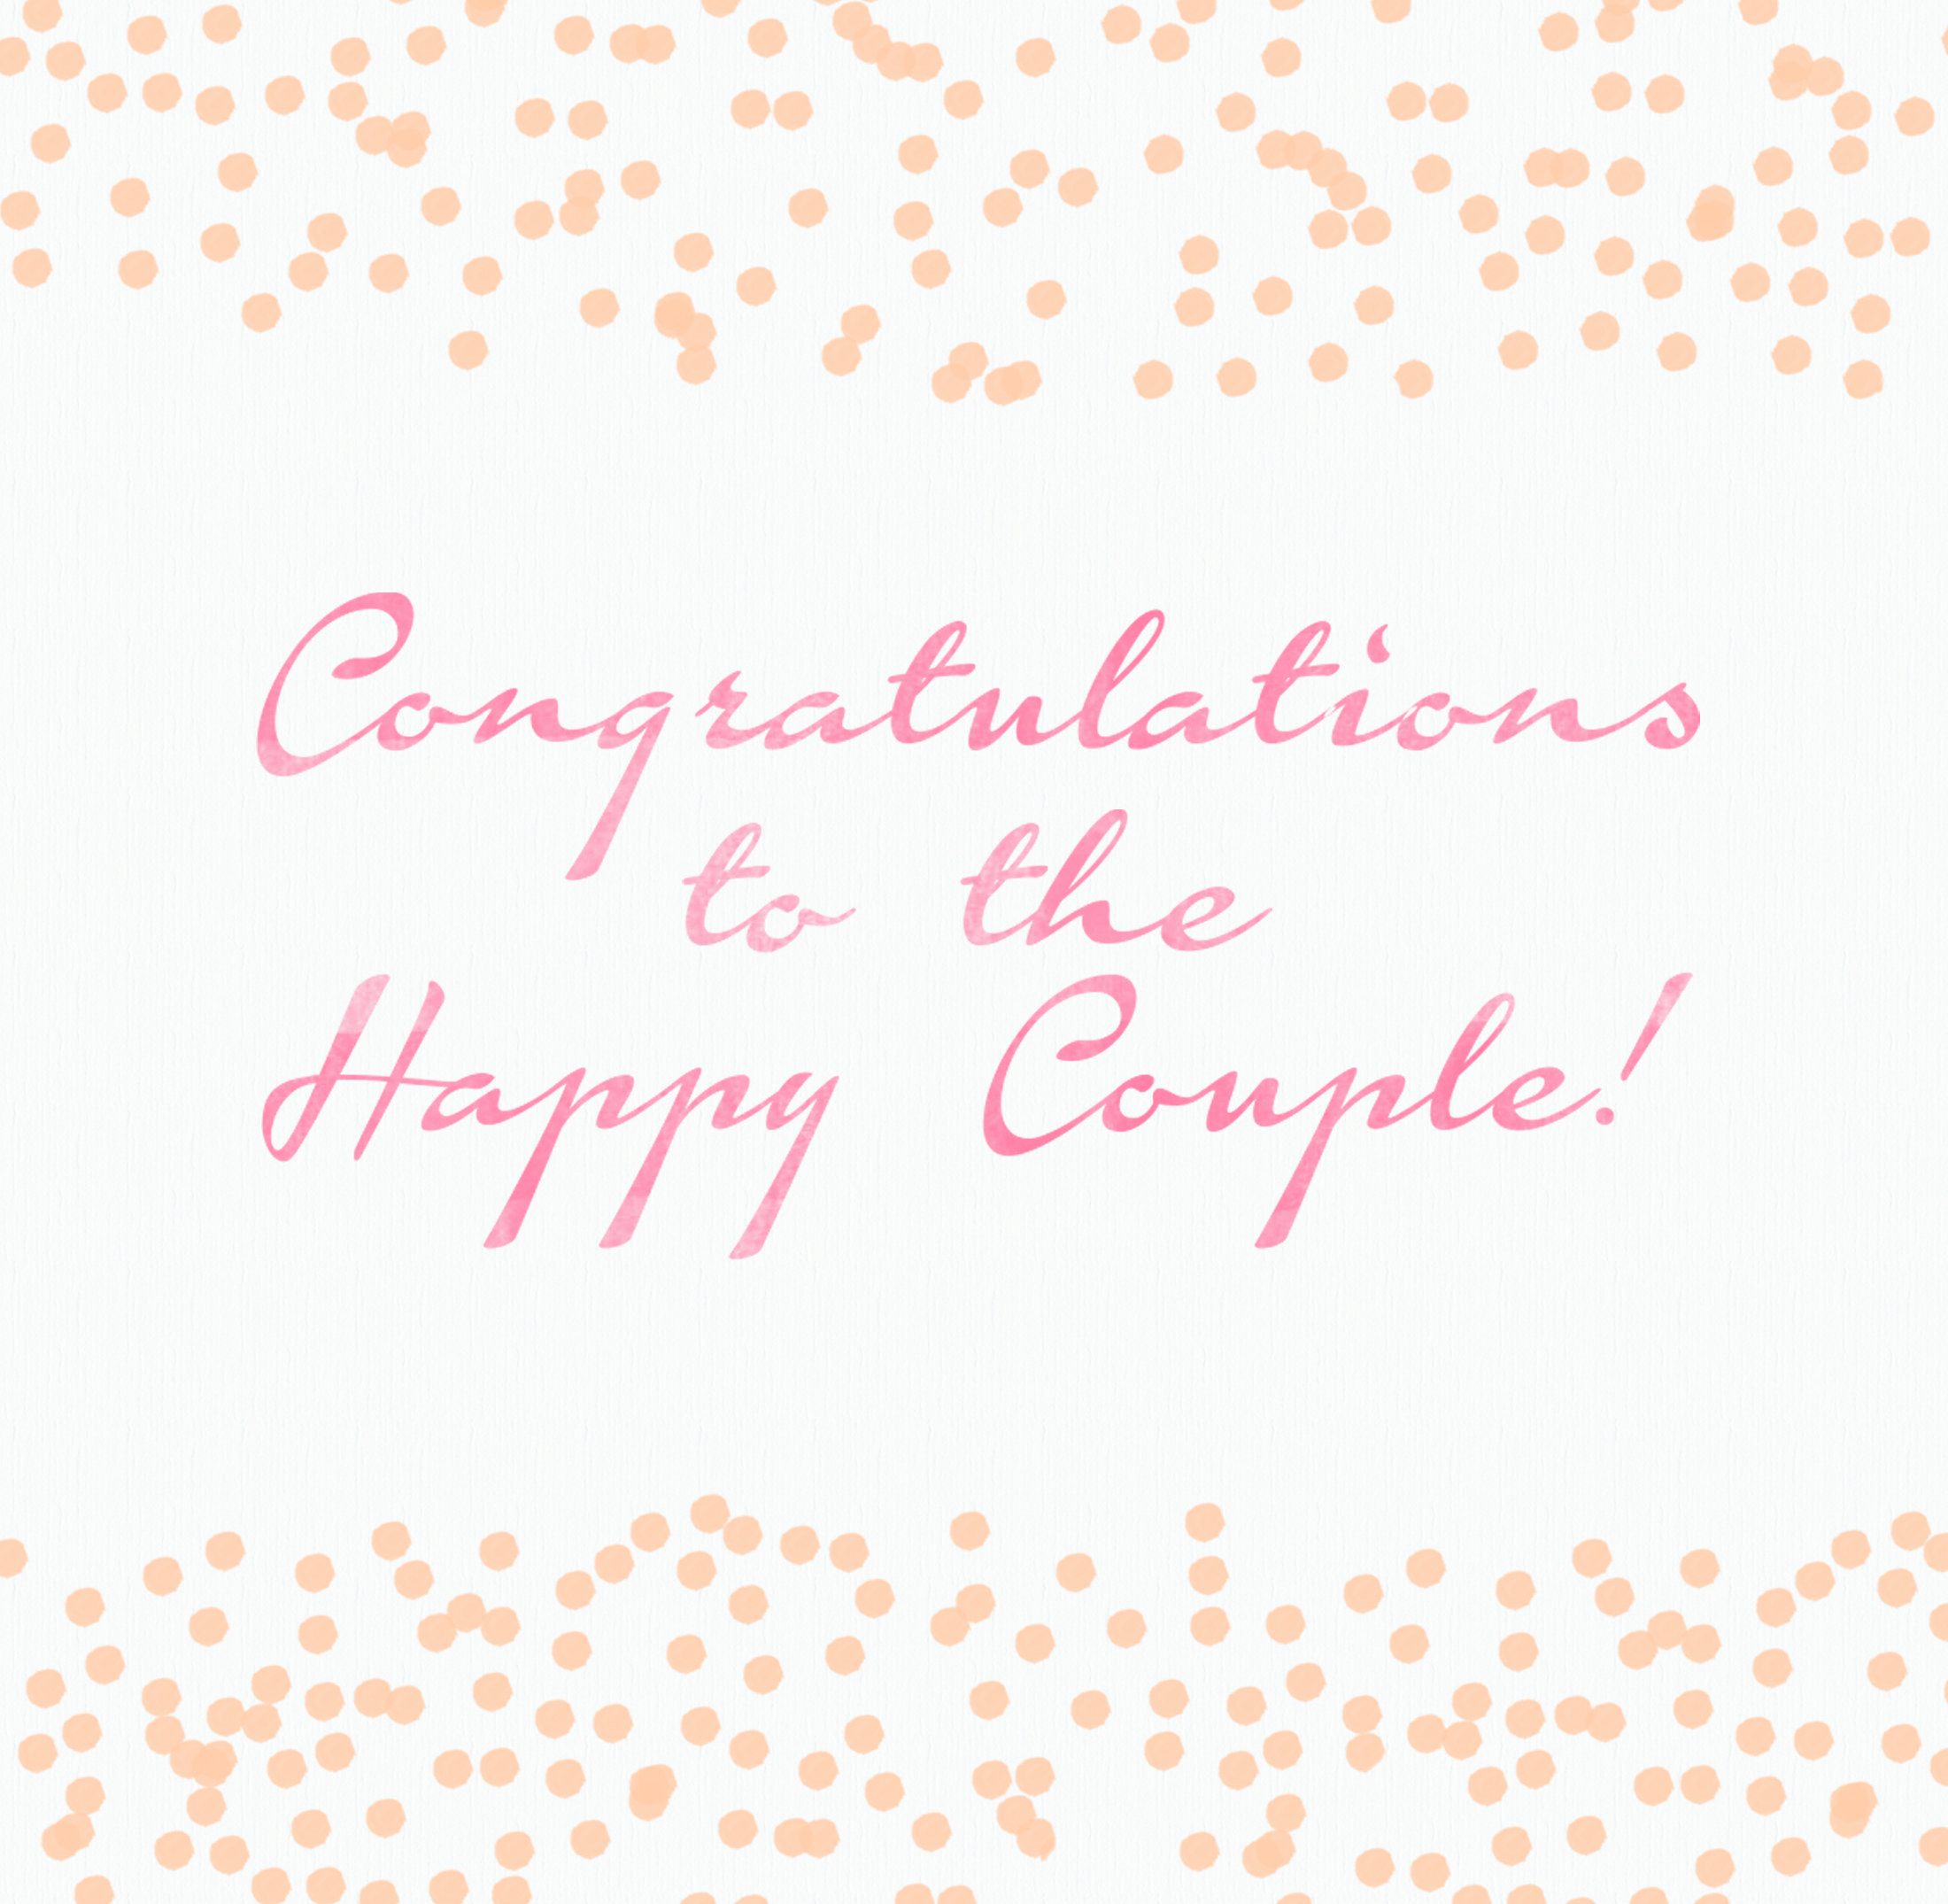 Congratulations to the happy couple httpeventure congratulations to the happy couple httpeventure kristyandbryce Image collections